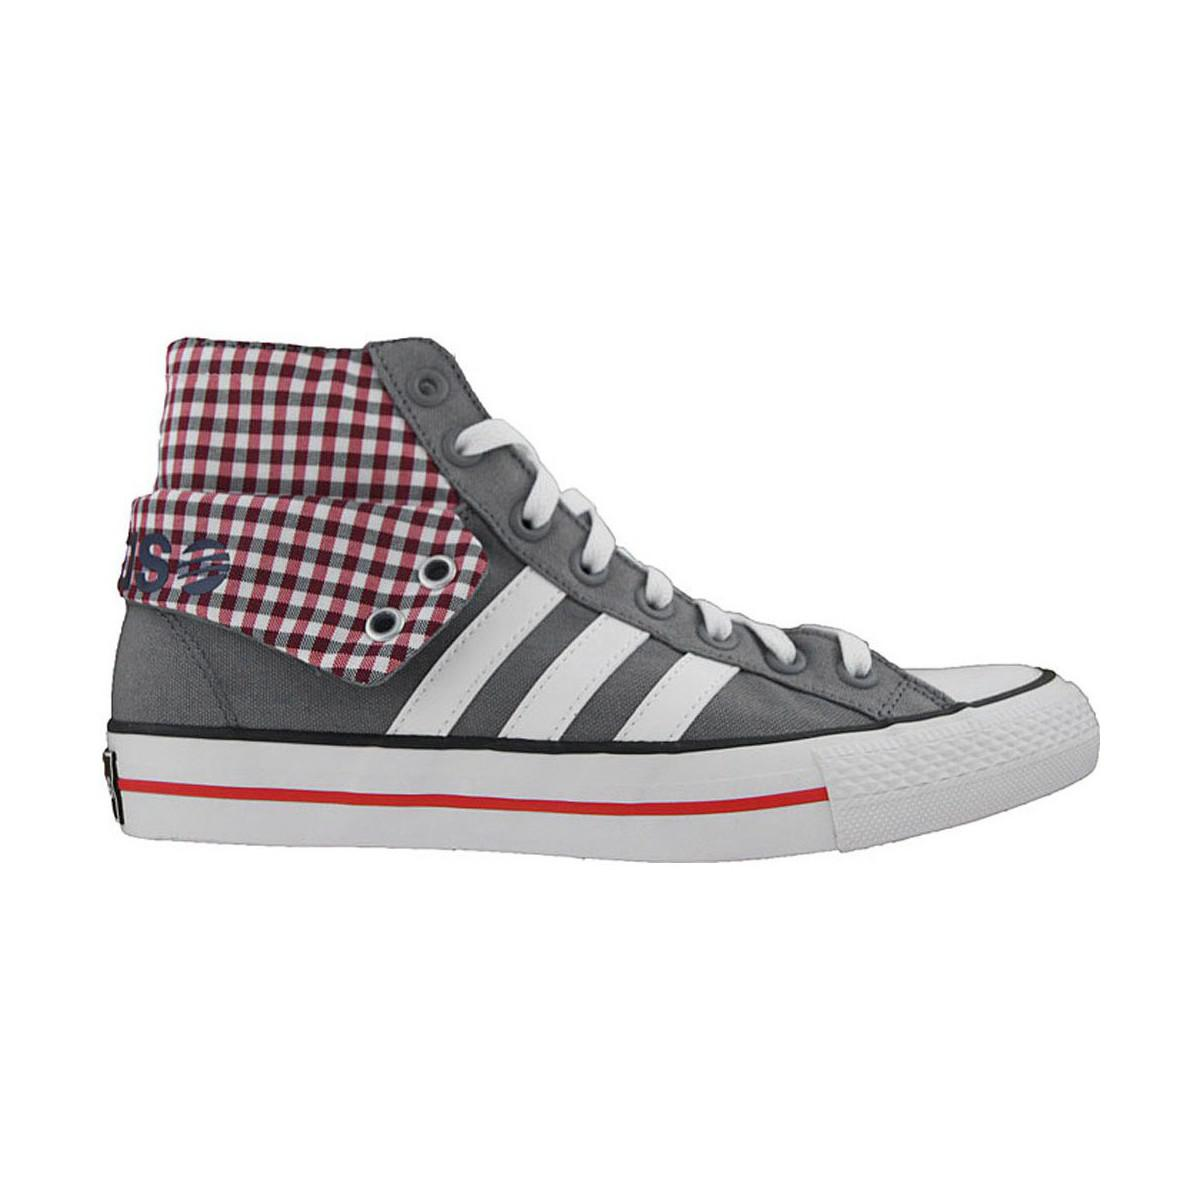 46e73f5276d6 ... cheapest adidas bbneo 3 stripes cv mid mens shoes high top trainers in  fefff 3d9bd